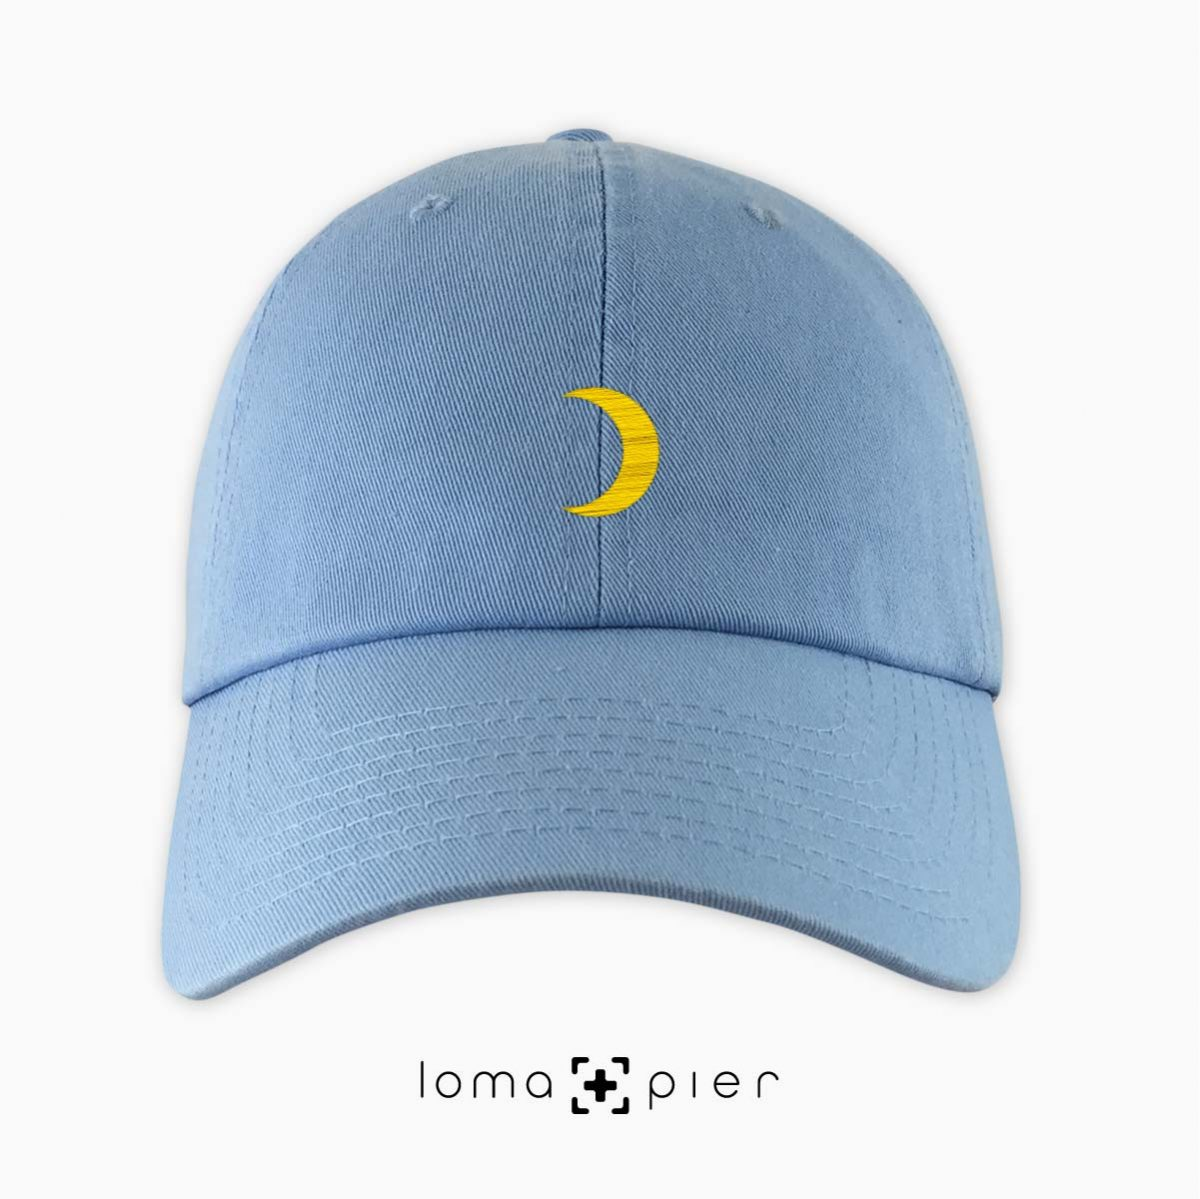 MOON icon embroidered on a light blue dad hat by loma+pier hat store made in the USA